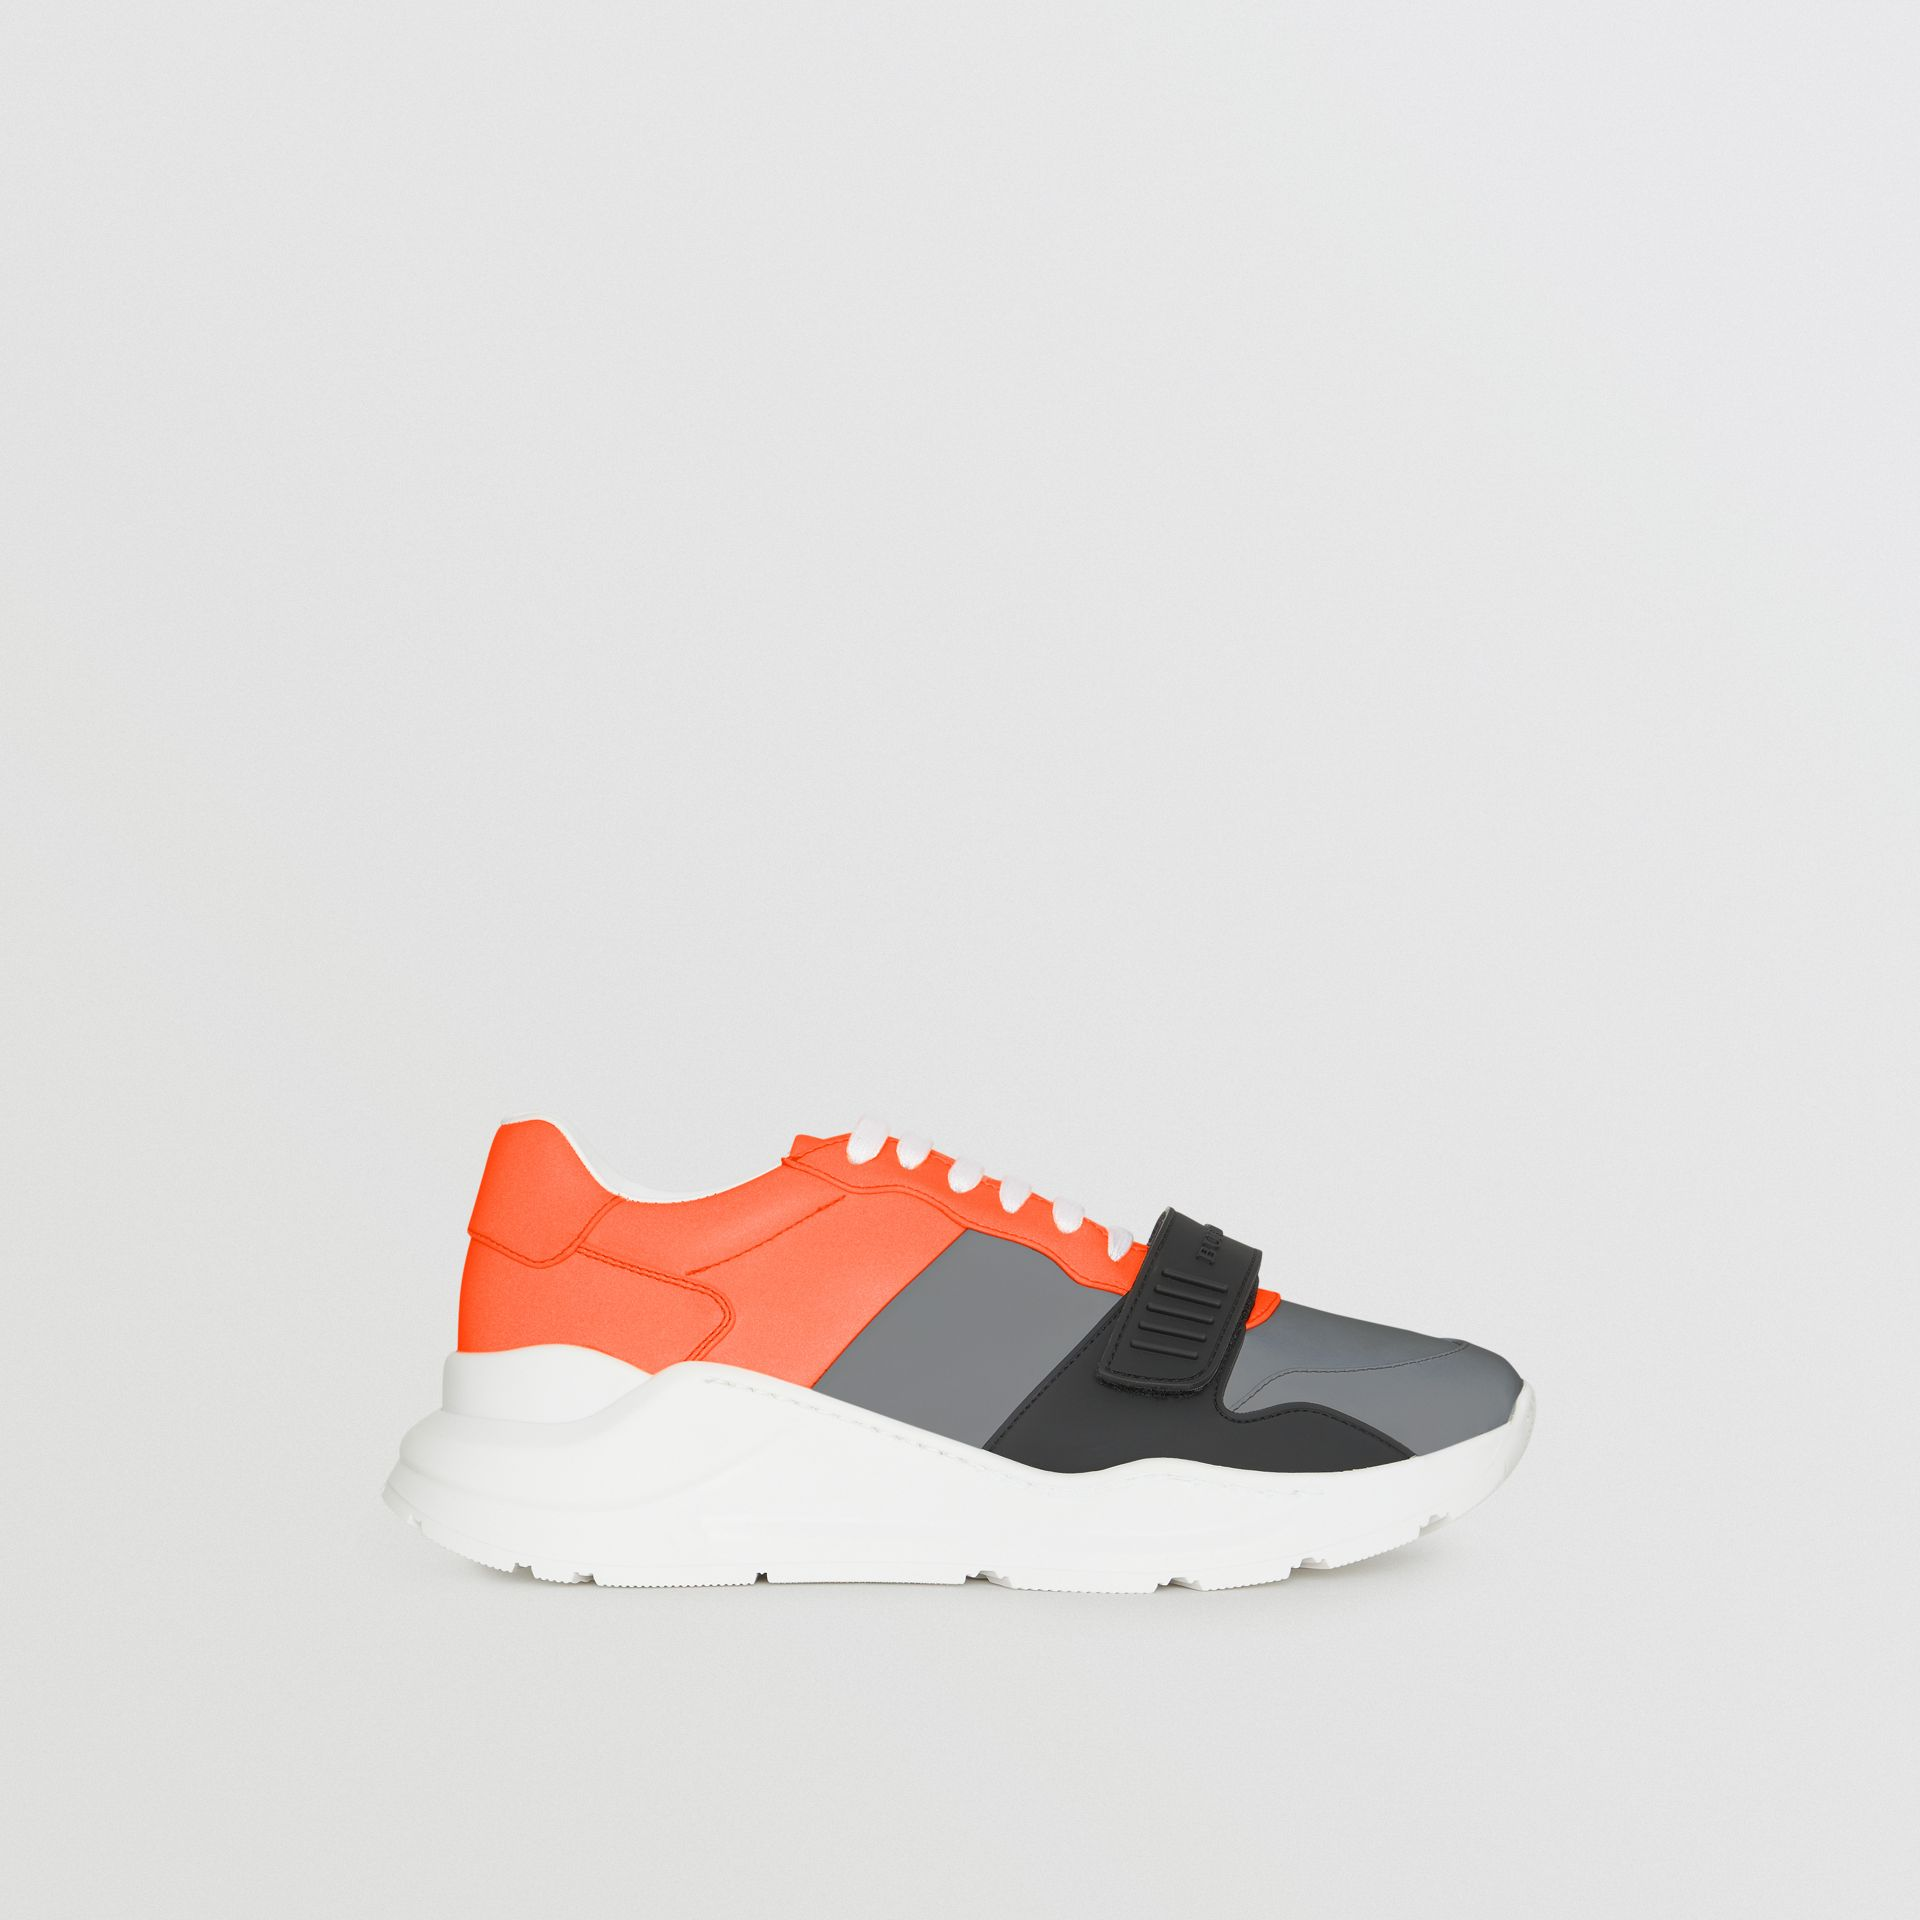 Colour Block Sneakers in Silver Grey/orange - Men | Burberry - gallery image 5